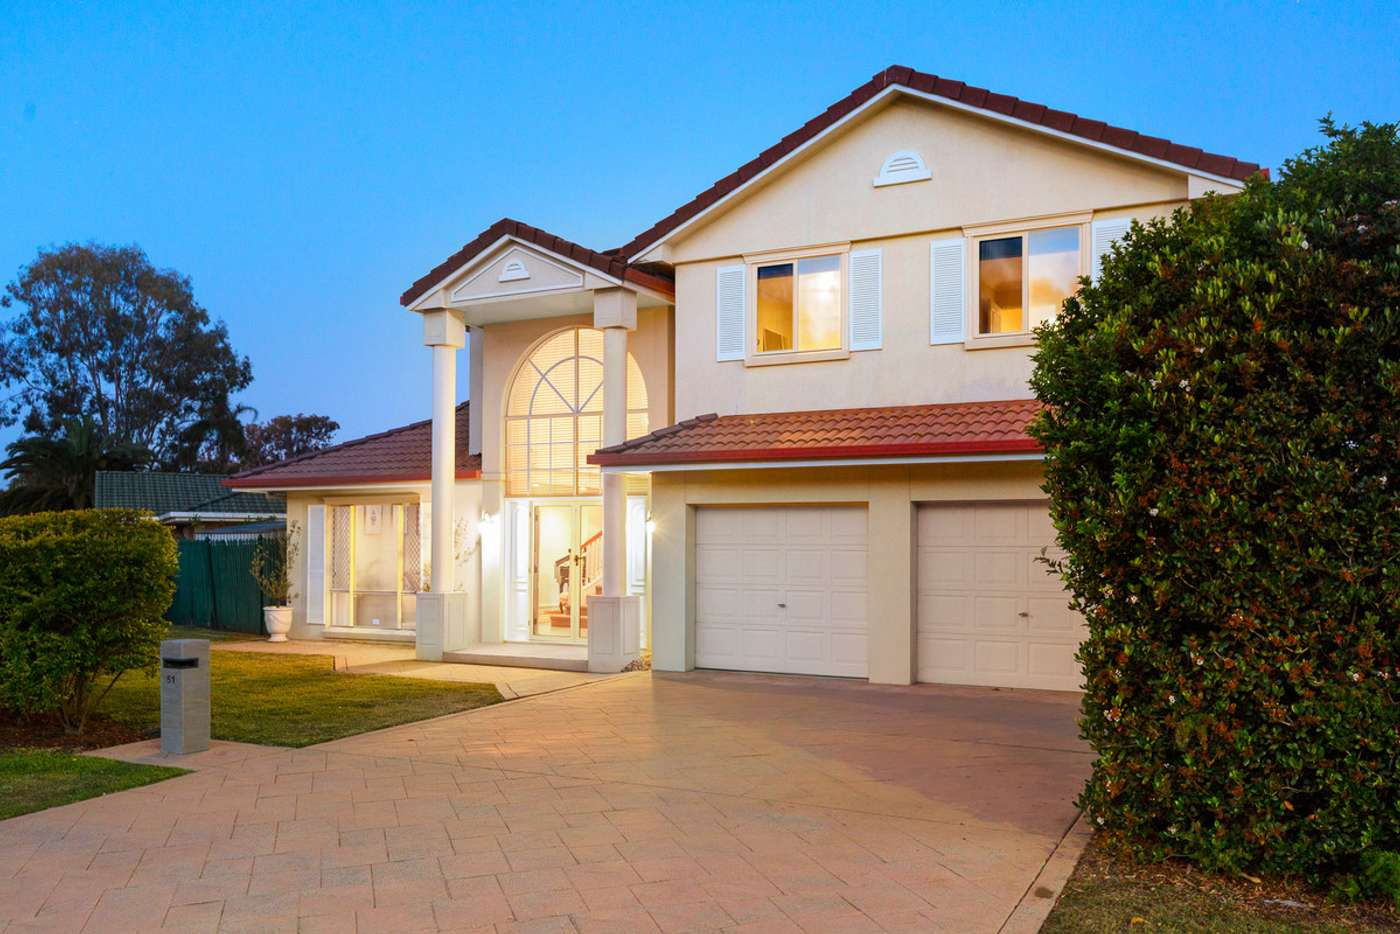 Main view of Homely house listing, 51 Hailey Drive, Birkdale QLD 4159